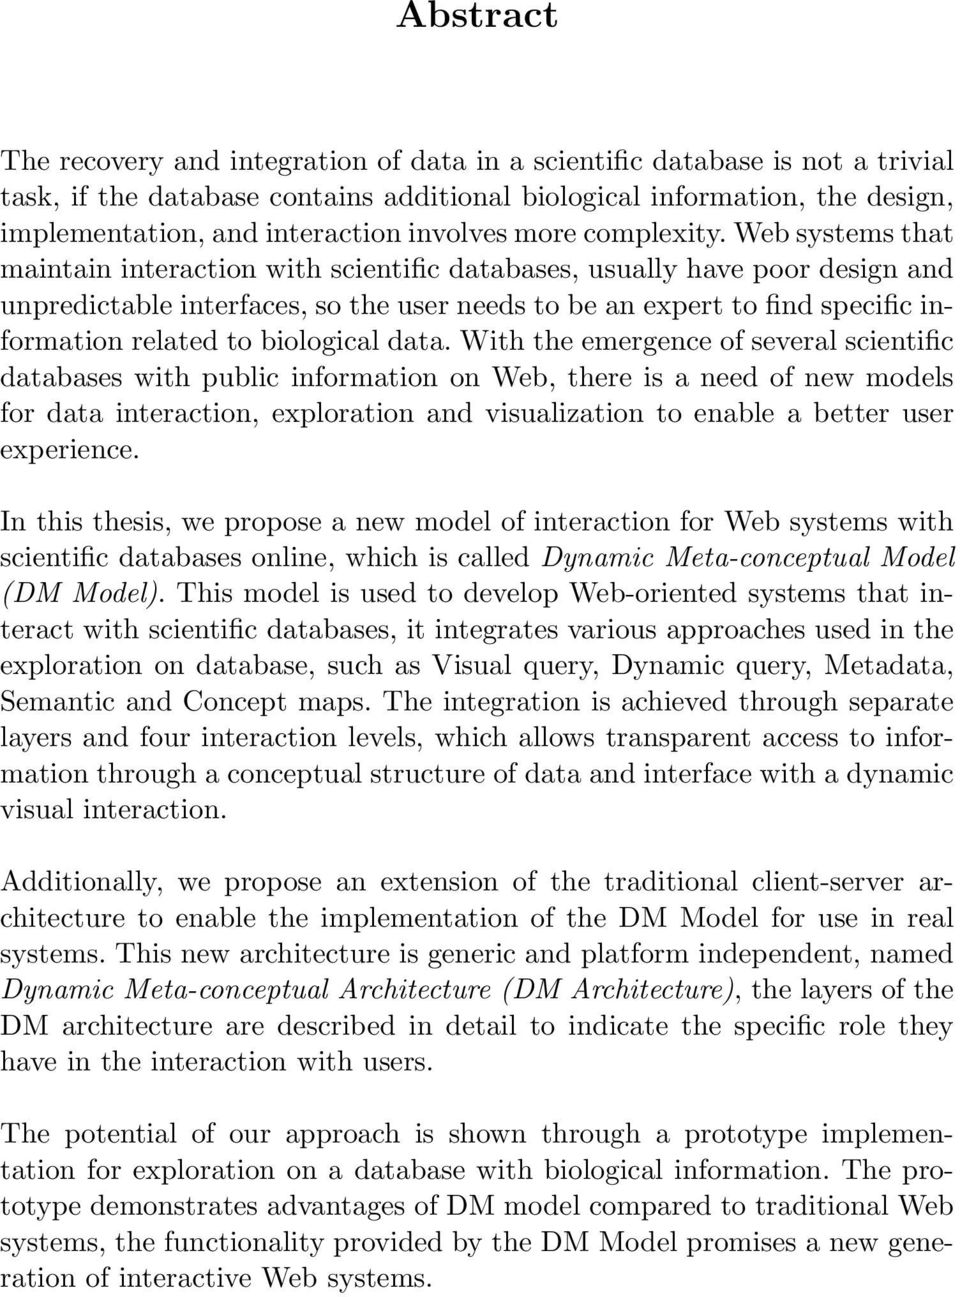 Web systems that maintain interaction with scientific databases, usually have poor design and unpredictable interfaces, so the user needs to be an expert to find specific information related to